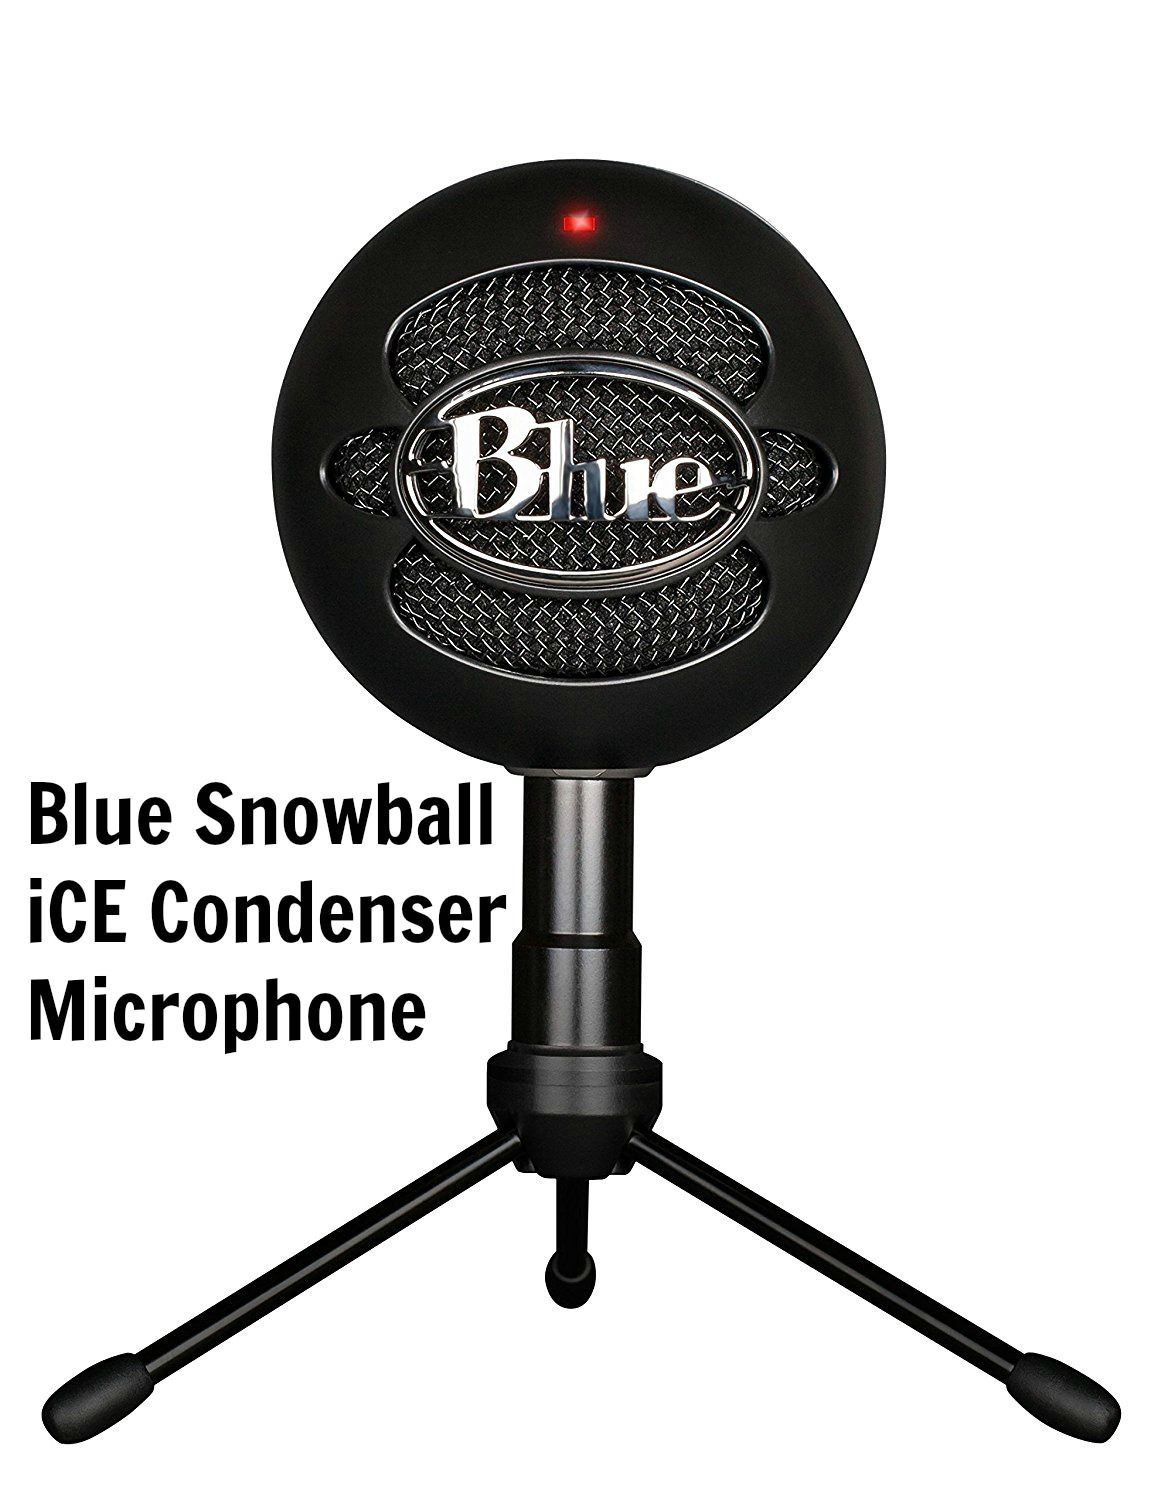 Custom condenser capsule offers crystal clear audio for